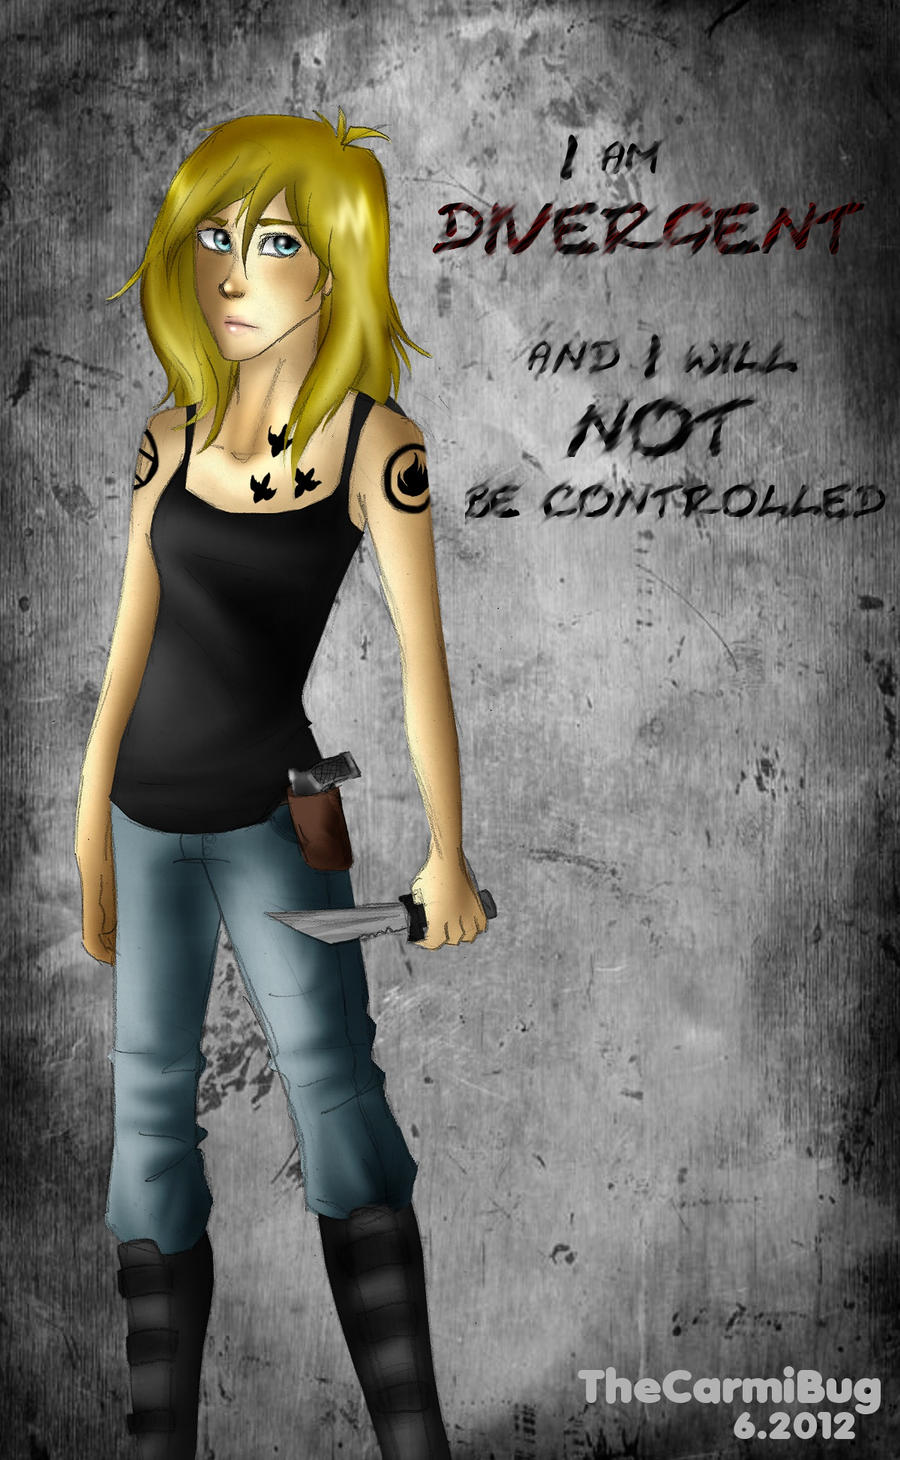 I will NOT be controlled by TheCarmiBug